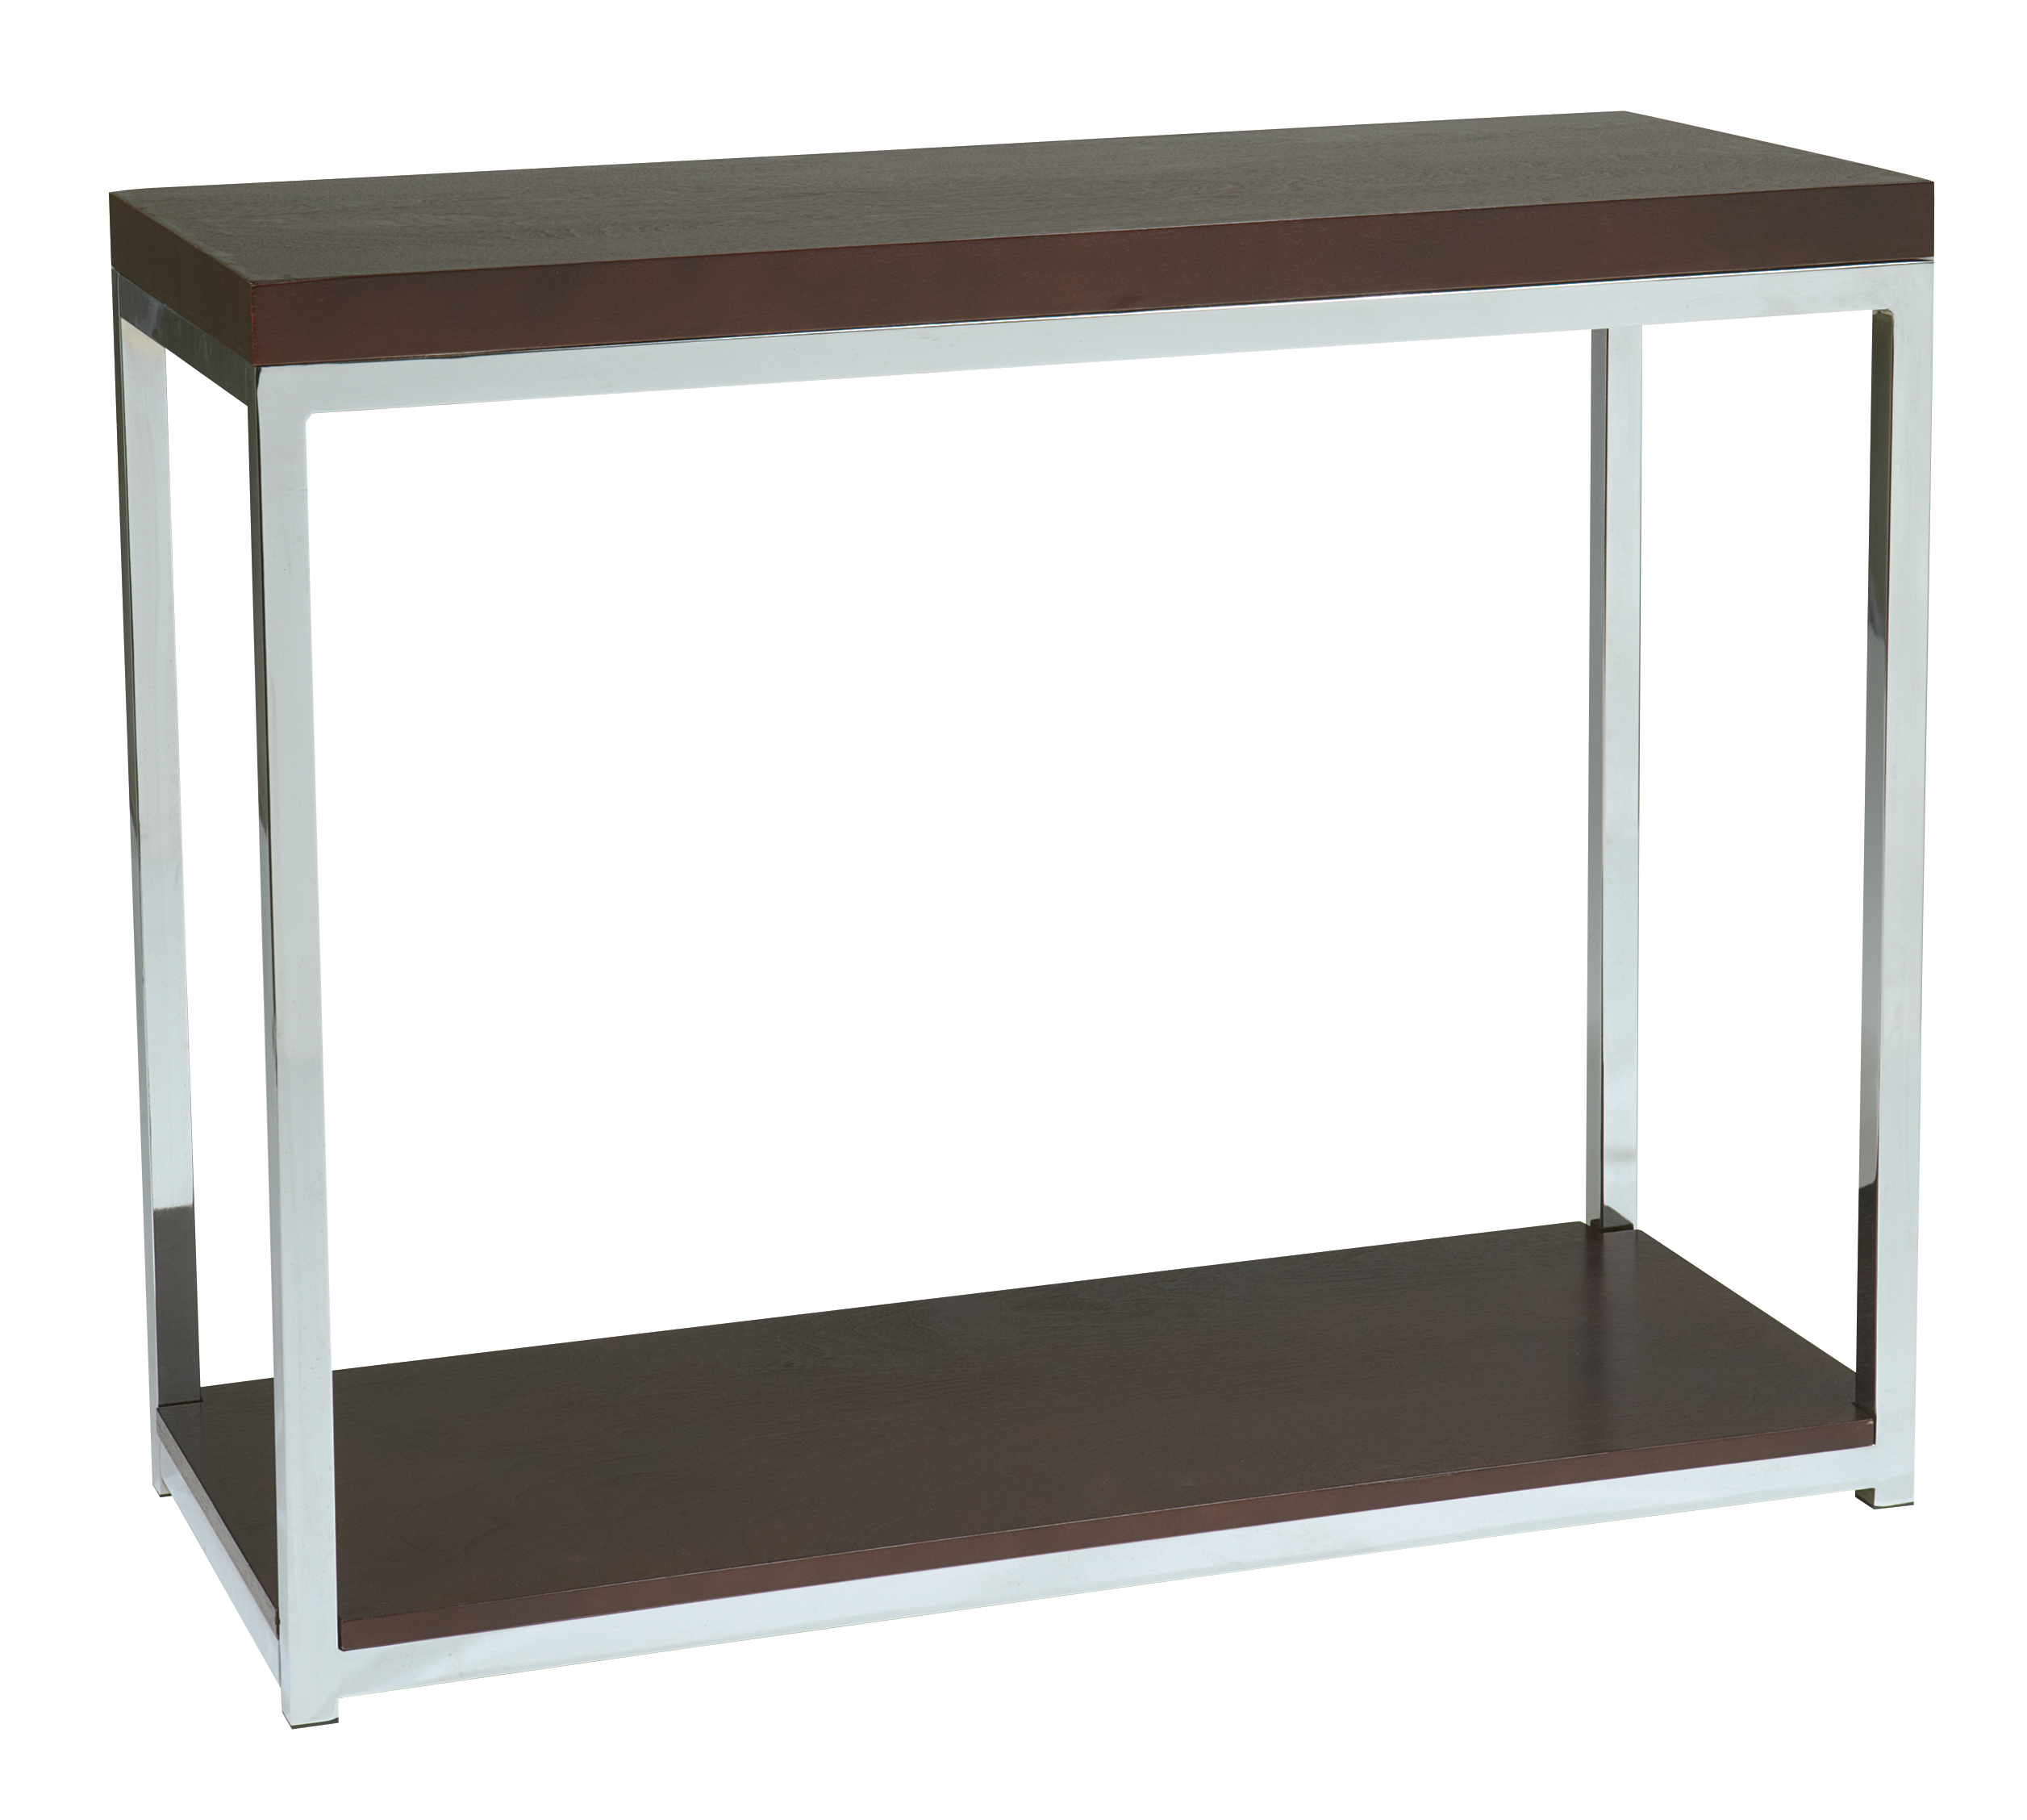 modern corner accent table with avenue six yield inch furniture stainless frame design awesome using drawer and not small sheldon robinson has subscribed credited from america